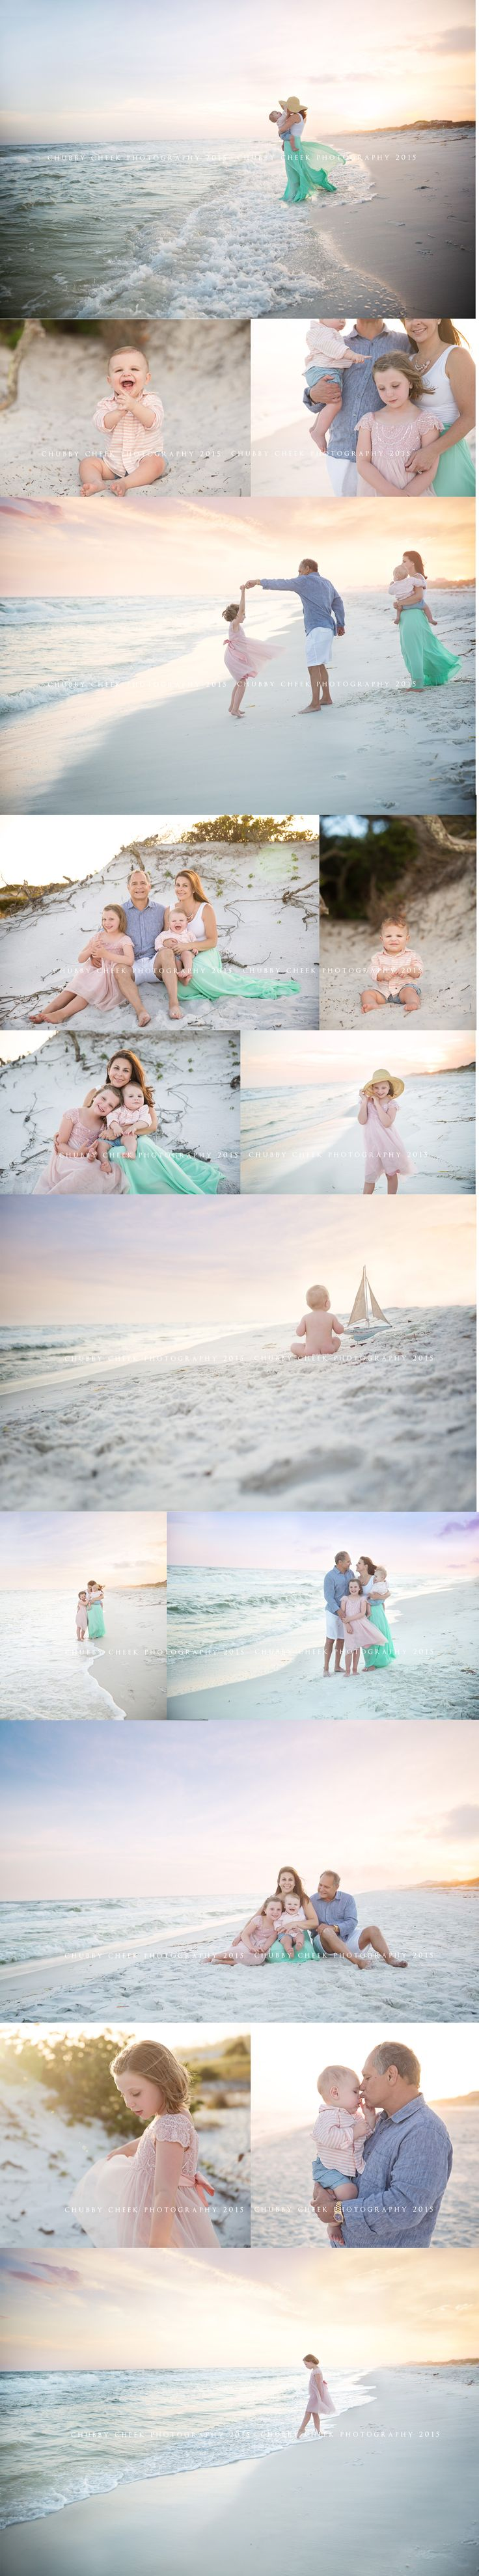 dear watercolor florida,i am obsessed with your white sand, your aqua water and your painted sunsets!with love,your texas beach lovin' friend So a few weeks ago i had the opportunity to go to watercolor florida and shoot two amazing families!  It was my first time to visit…